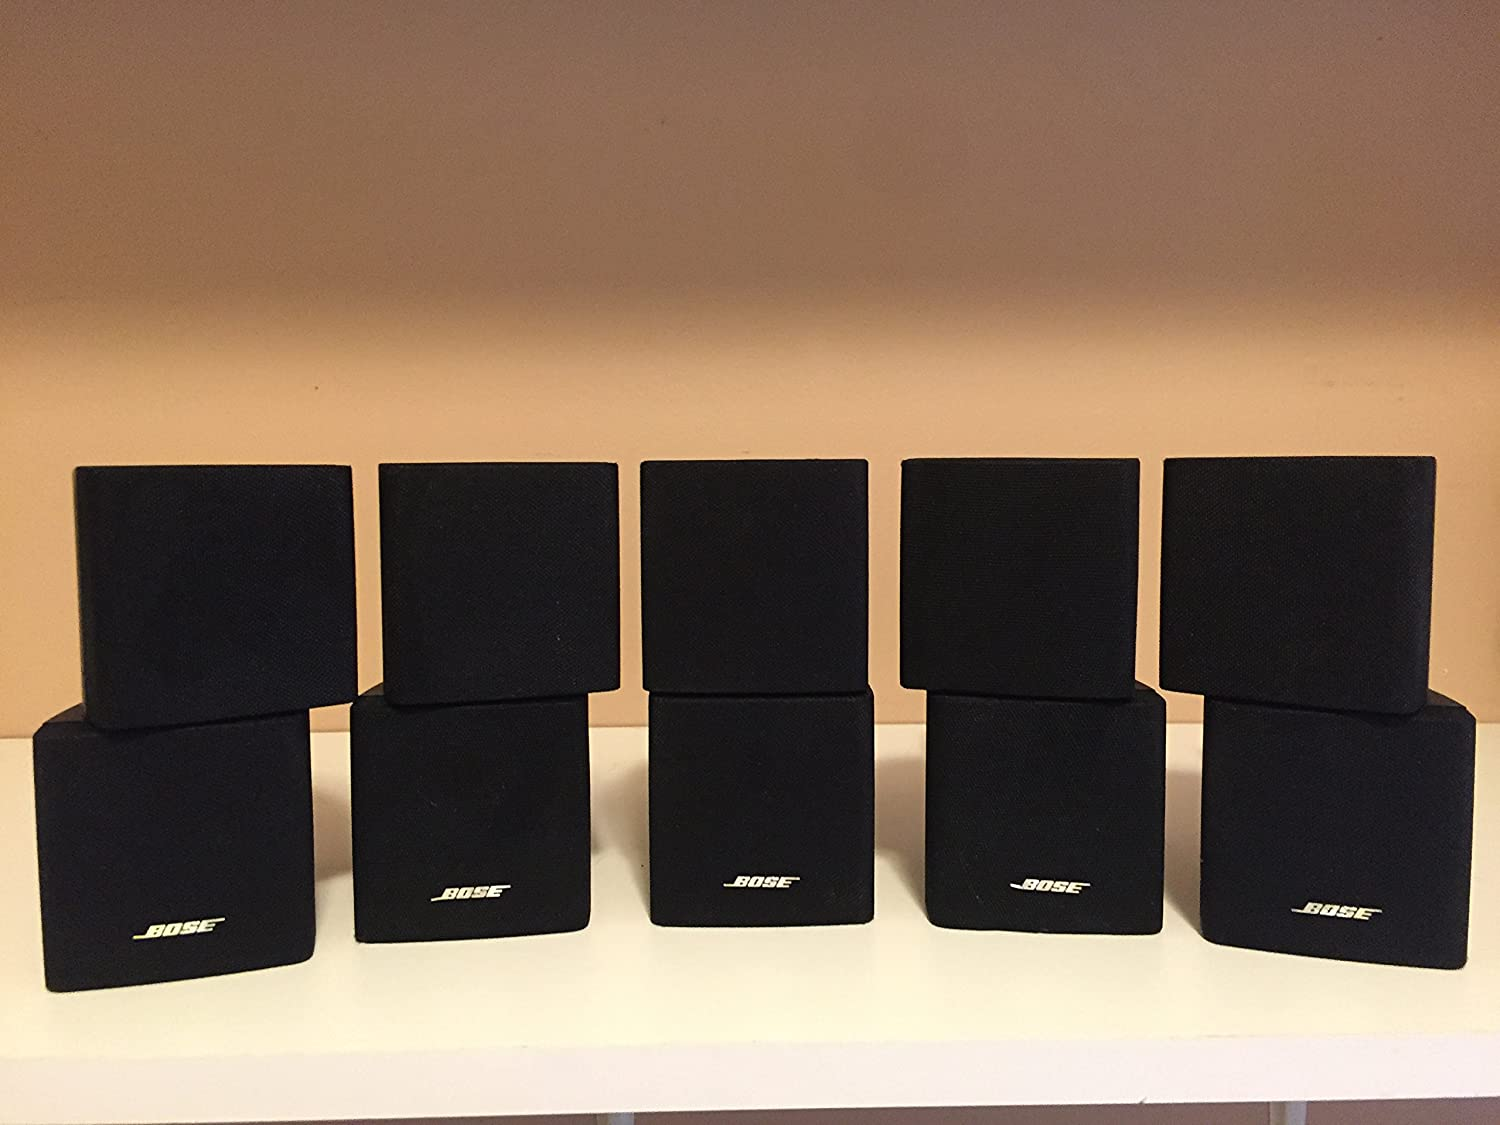 1 x Bose First Gen Double Cube Speaker 5 Available Bose Sound Guaranteed Nice